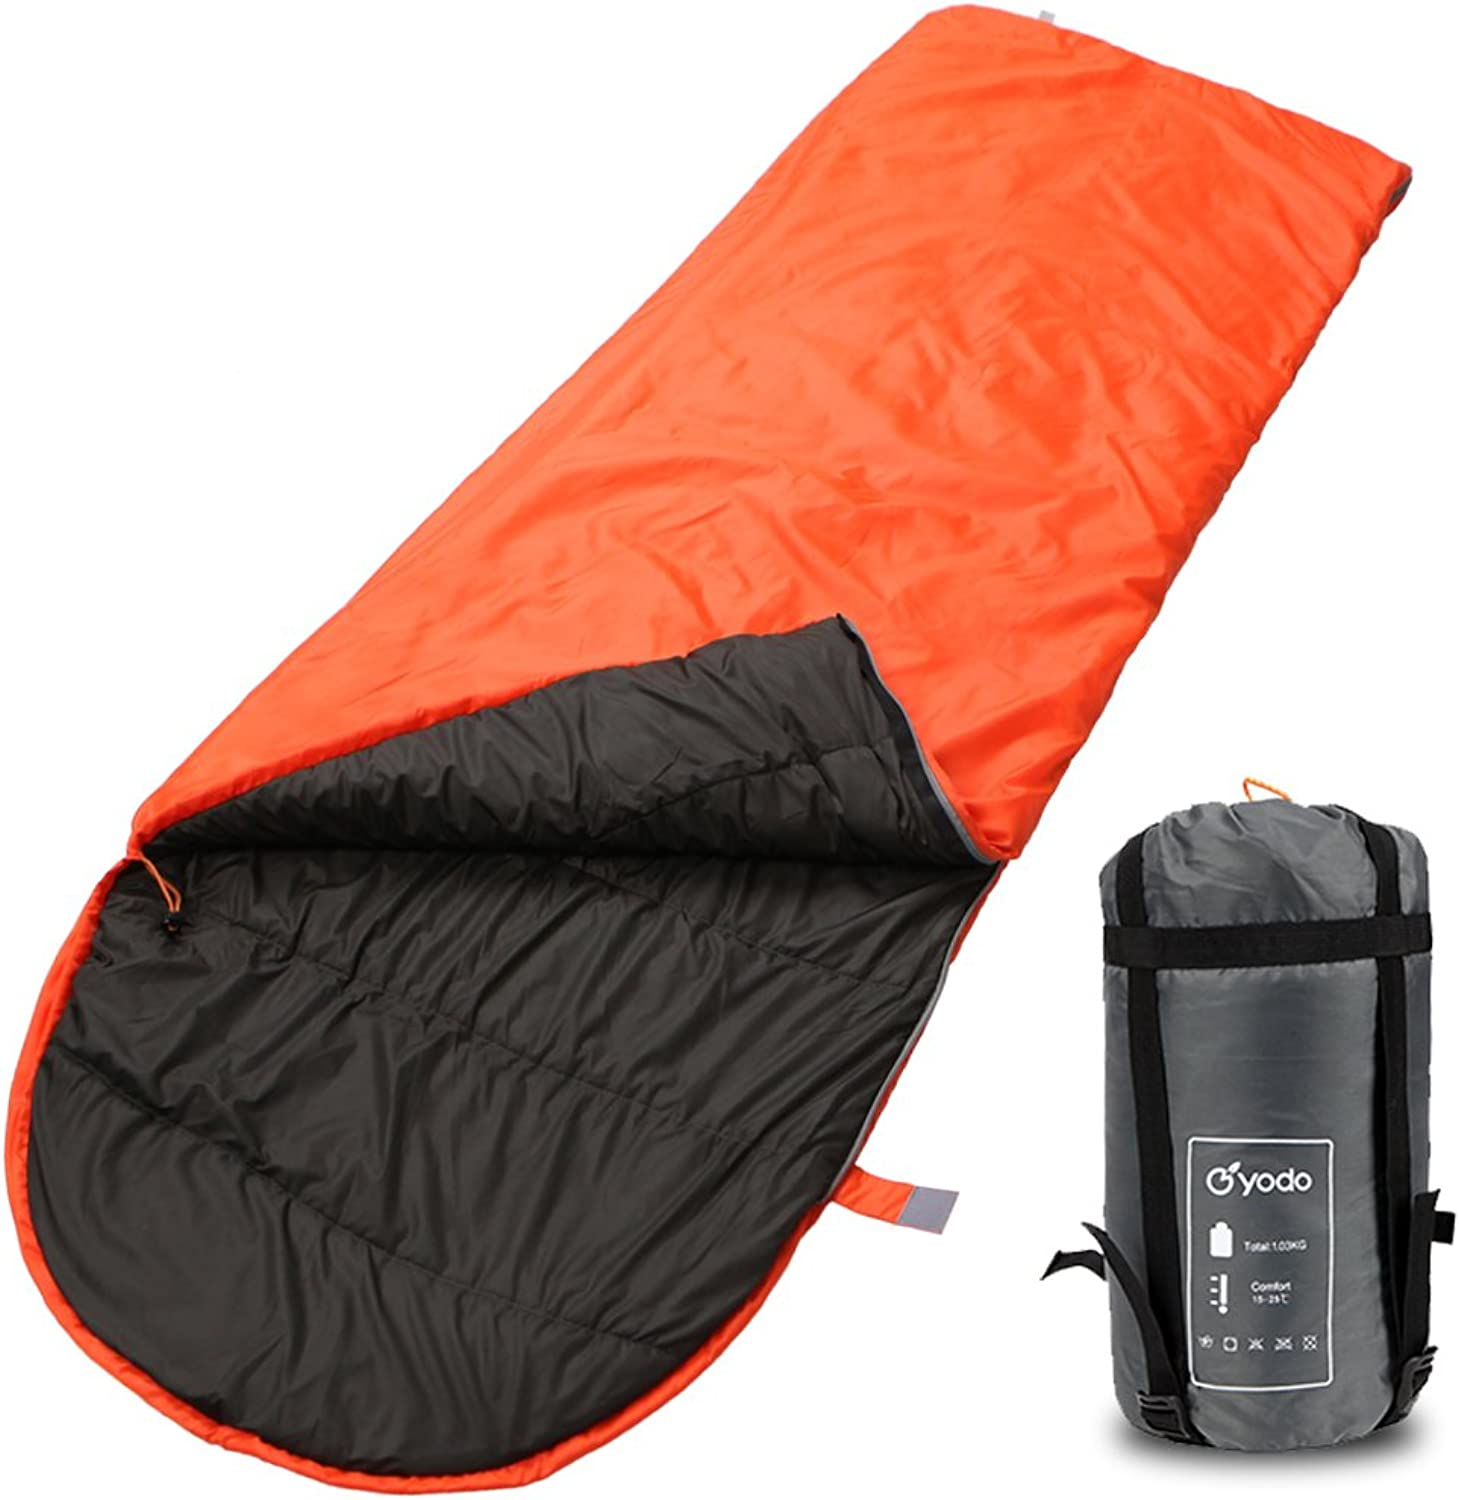 Yodo Compact Warm Weather Sleeping Bag for Outdoor Camping Hiking Backpacking Travel with Compression Sack for Women and Men,6080 Degree F